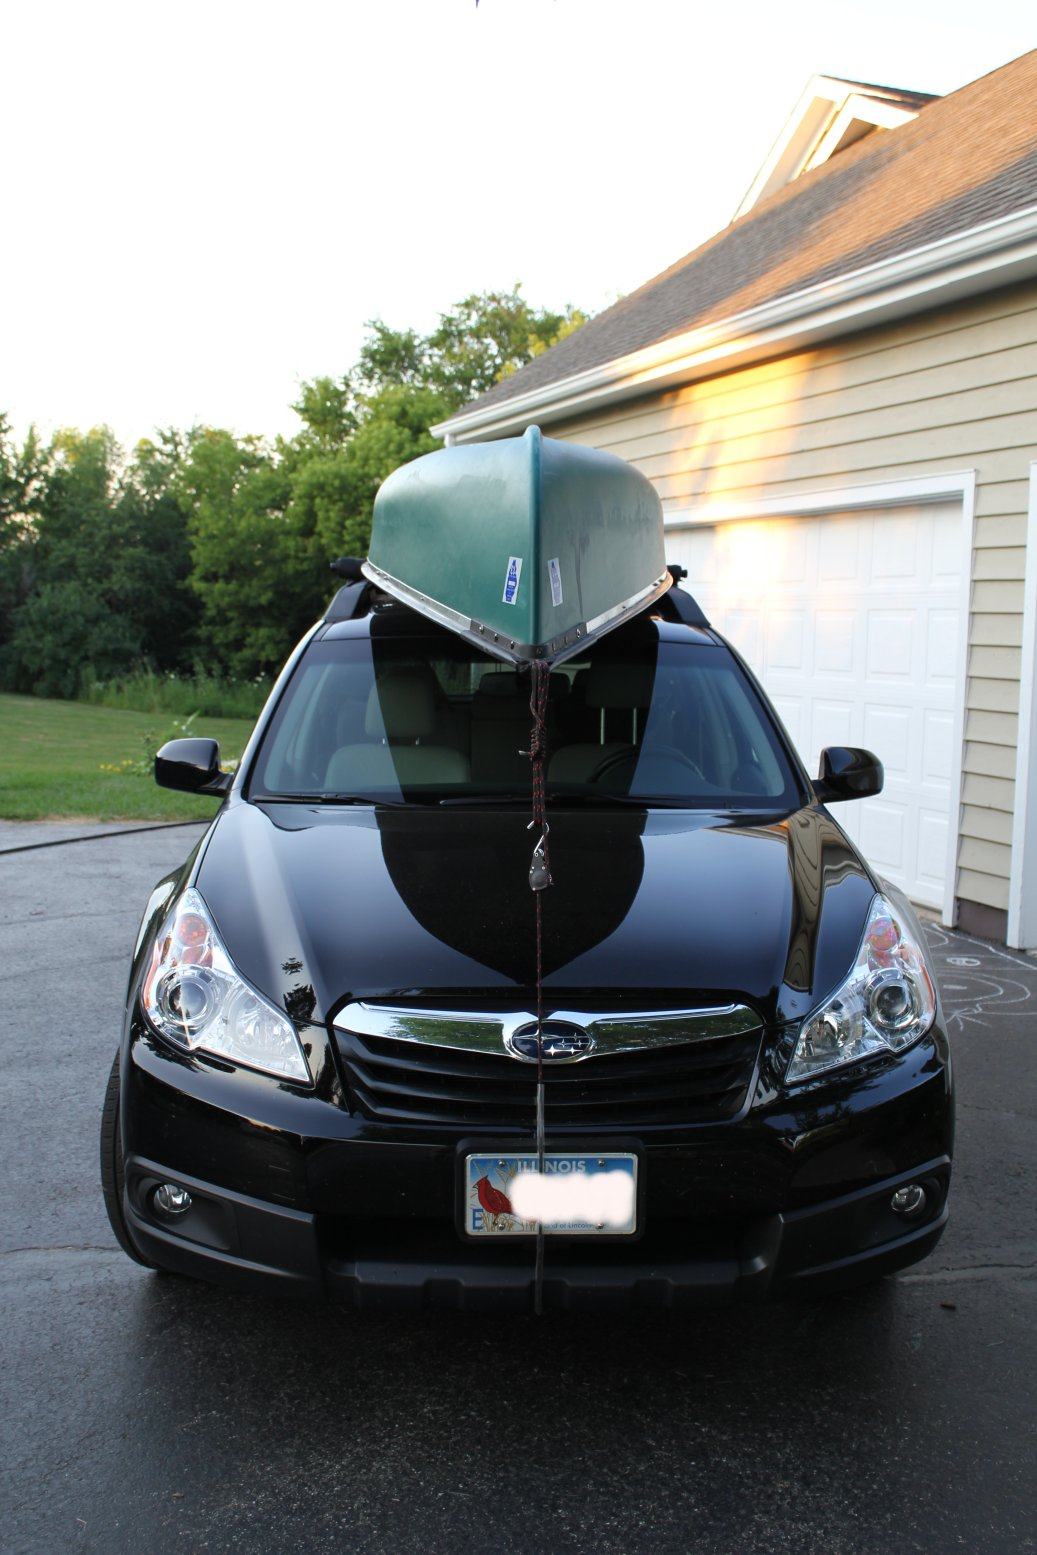 Hawk Brake Pads >> carrying a canoe on a 2010 OB - Page 13 - Subaru Outback ...